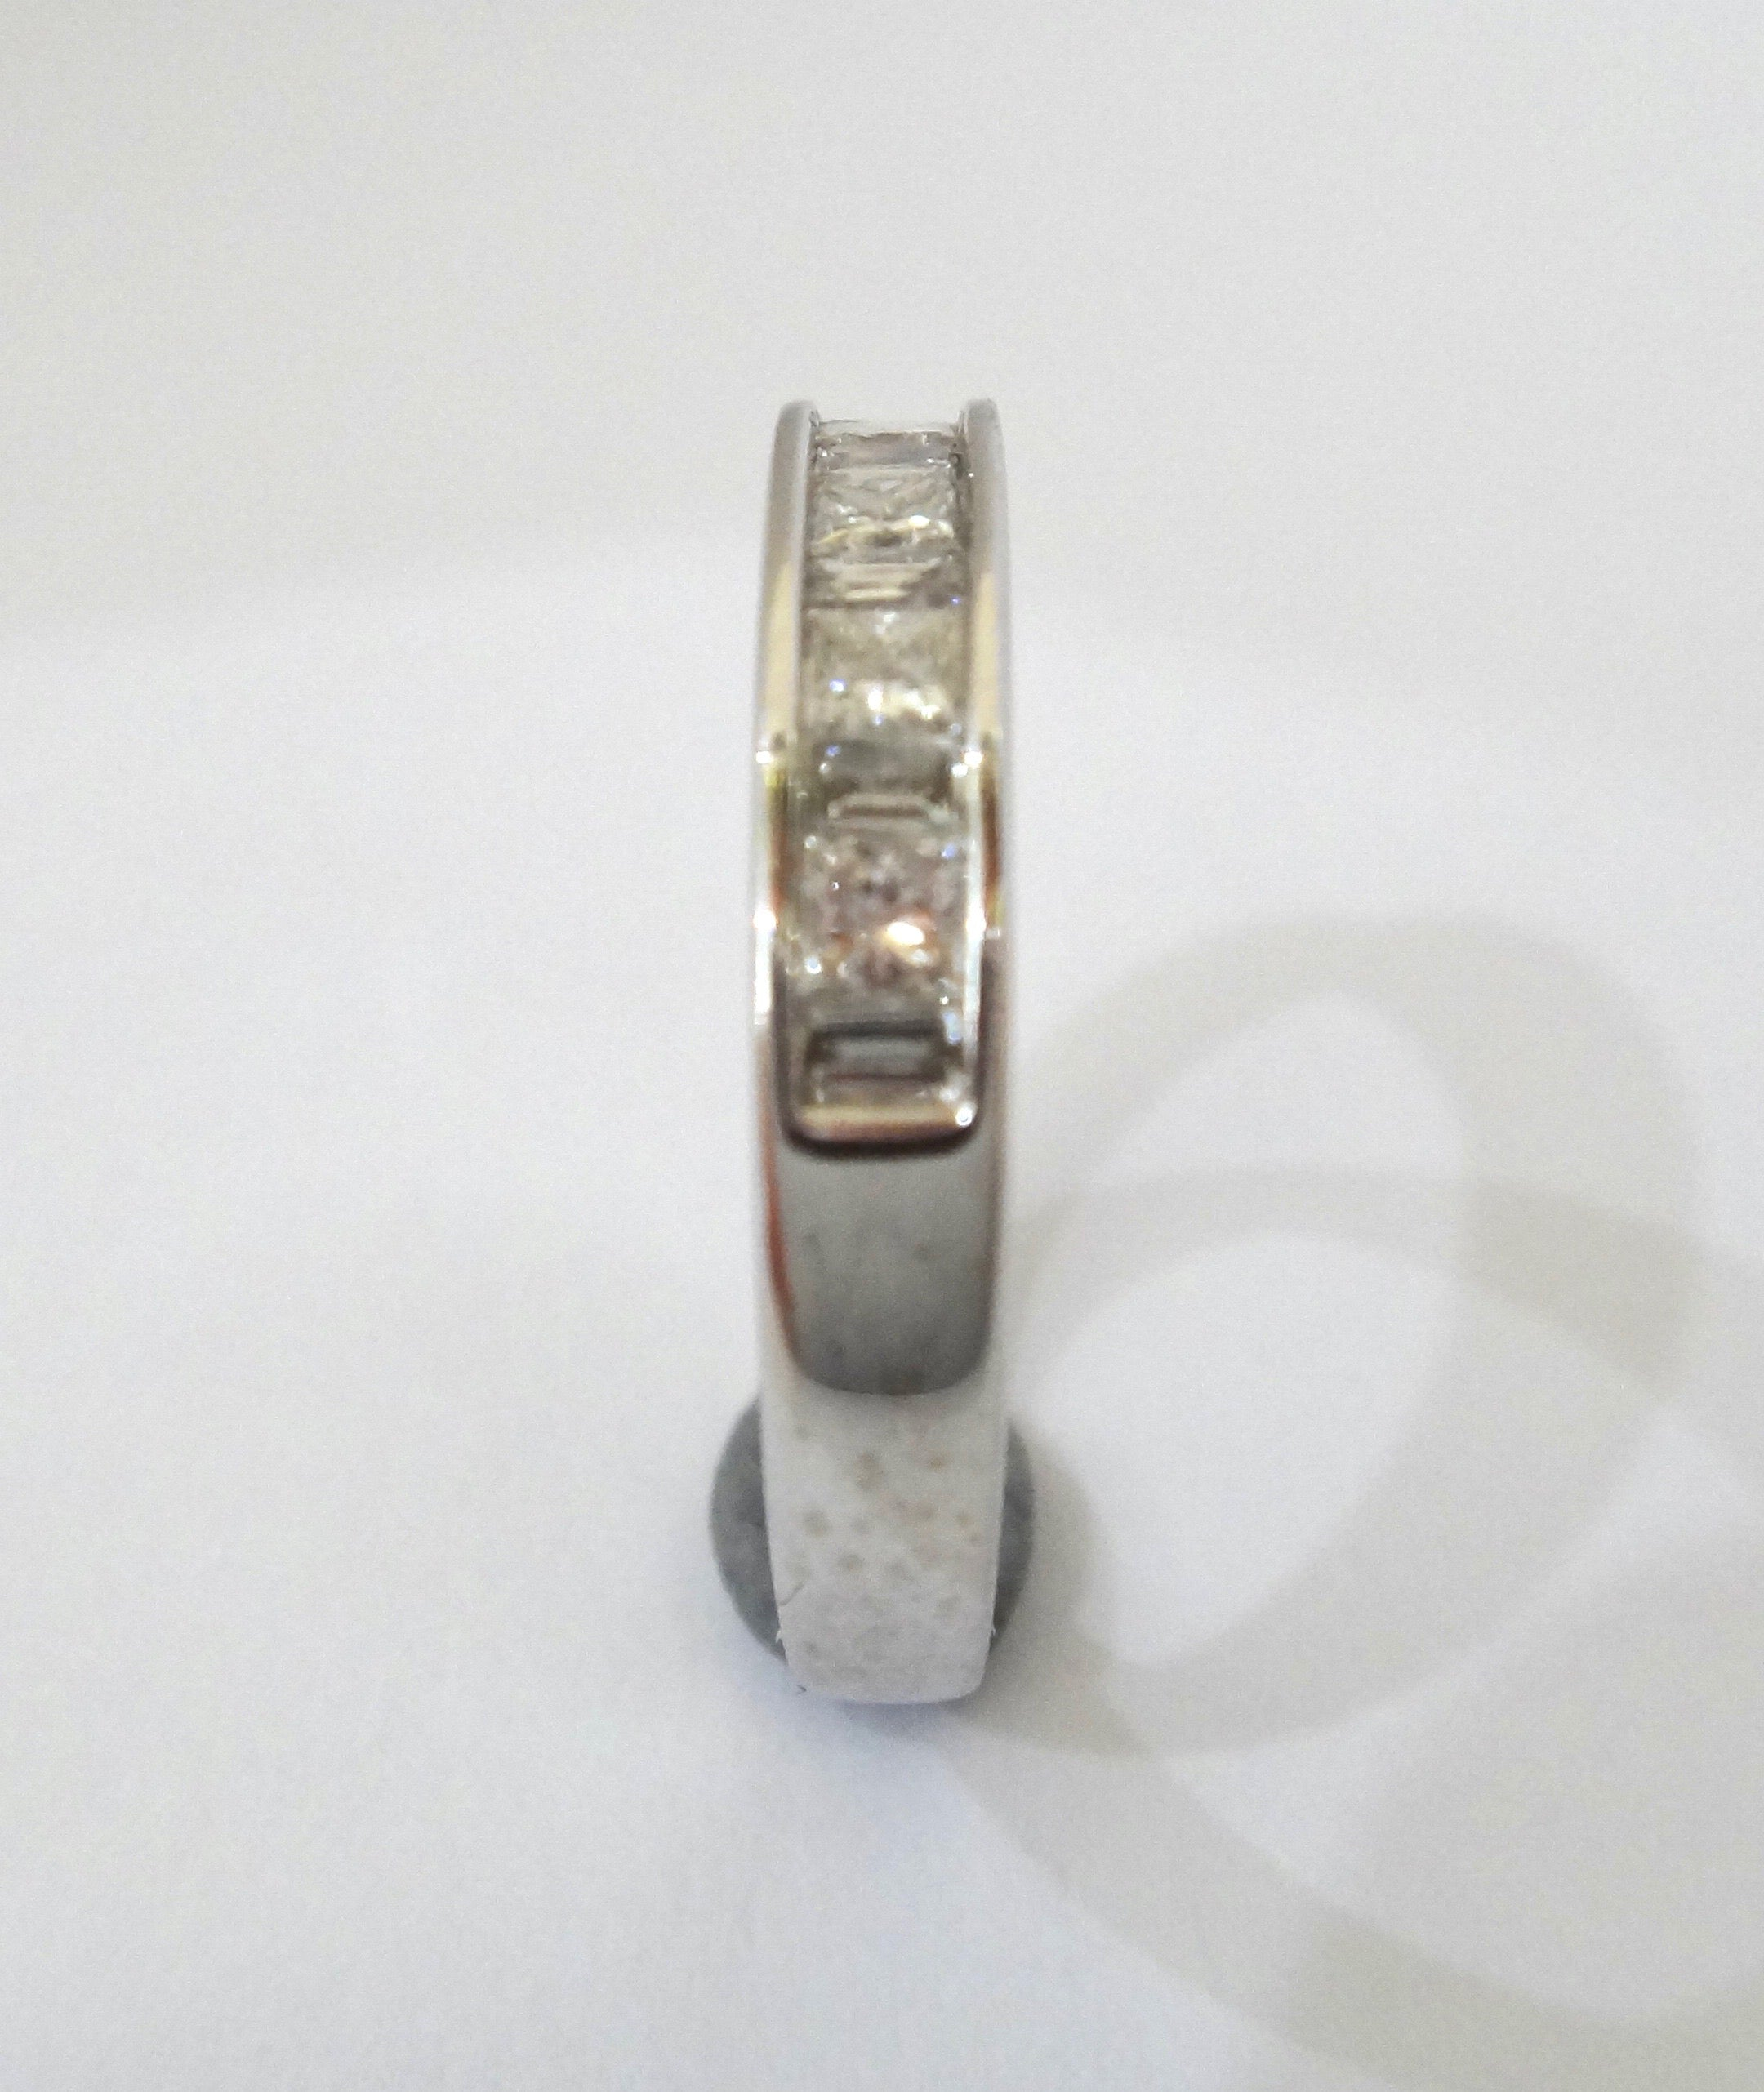 14CT White Gold, Baguette & Princess Cut Diamond Channel Set Ring VAL $2,380